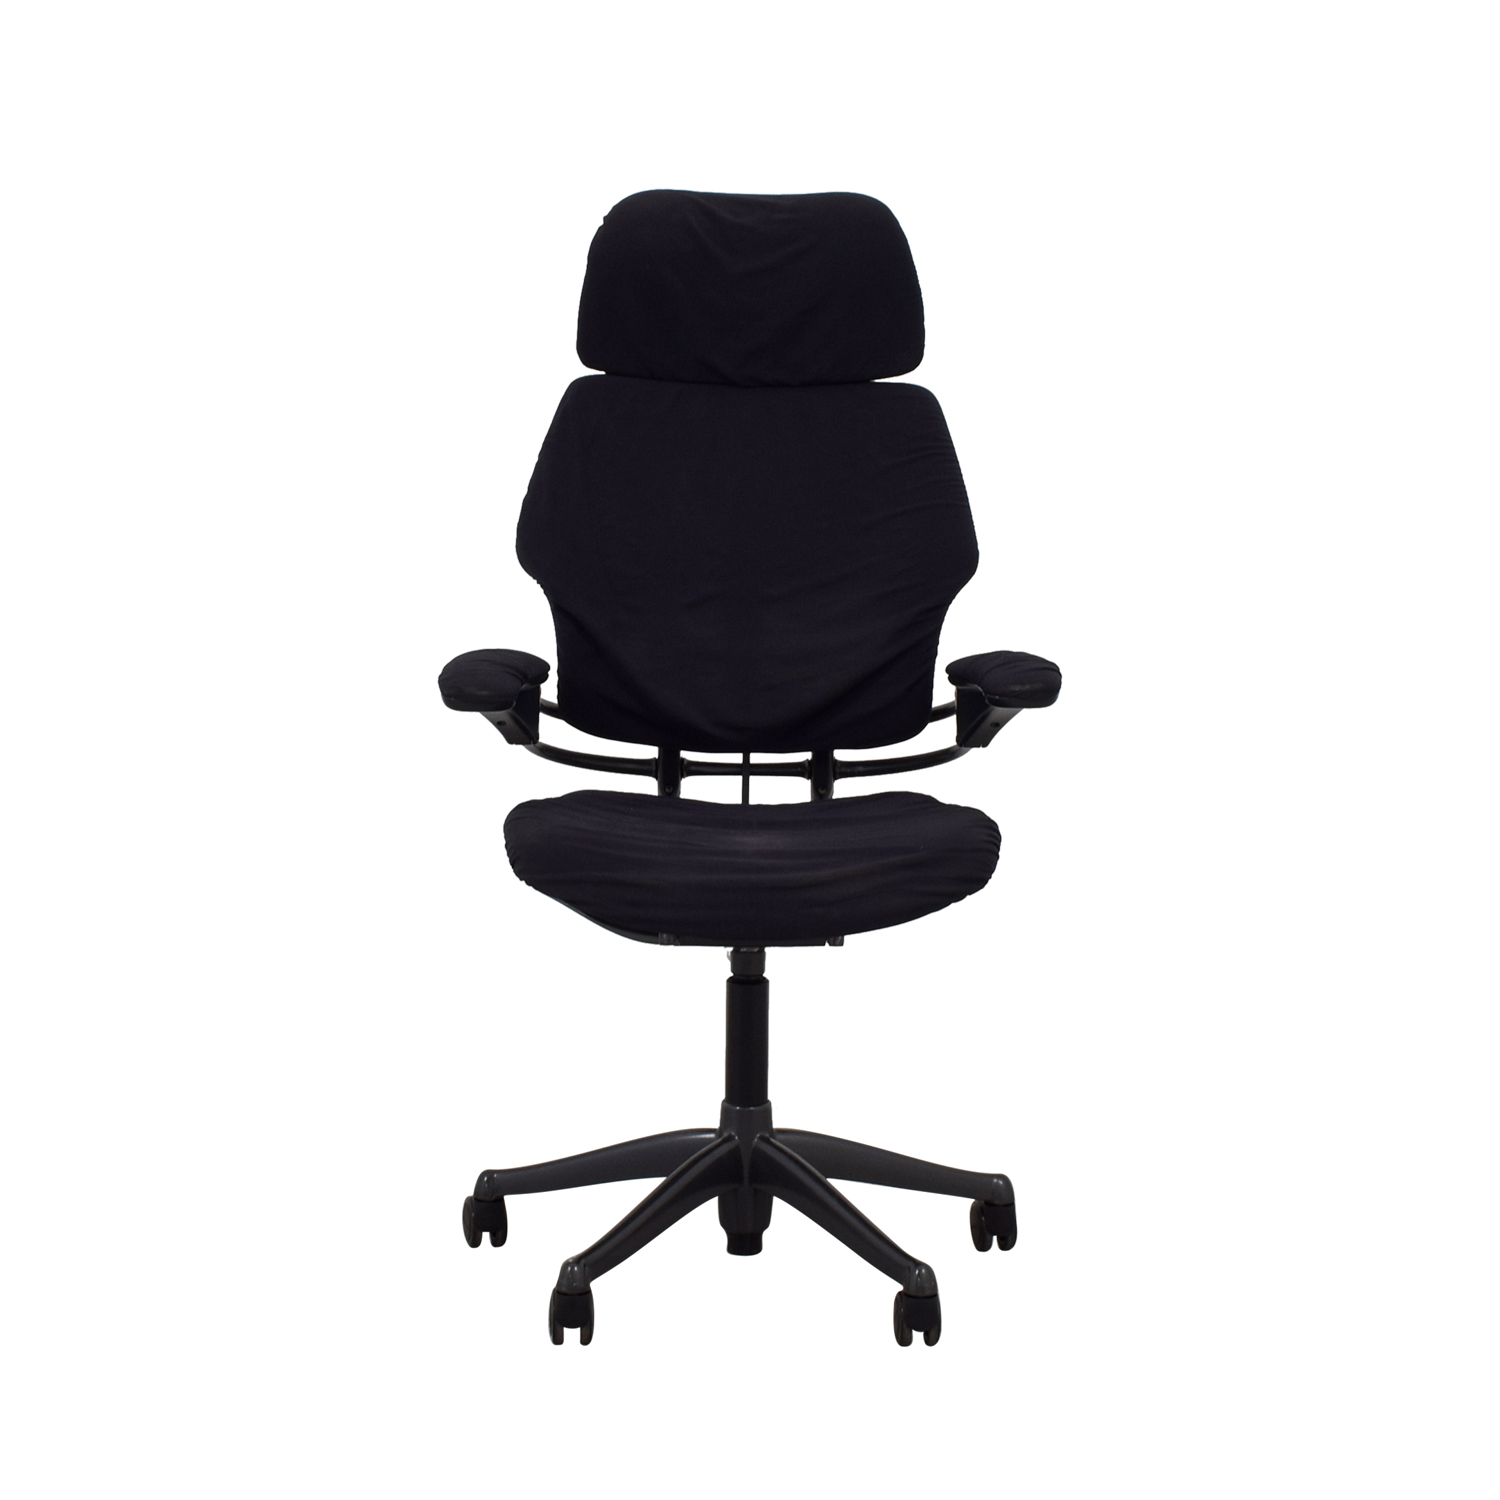 Human Scale Human Scale Black Freedom Chair with Headrest for sale